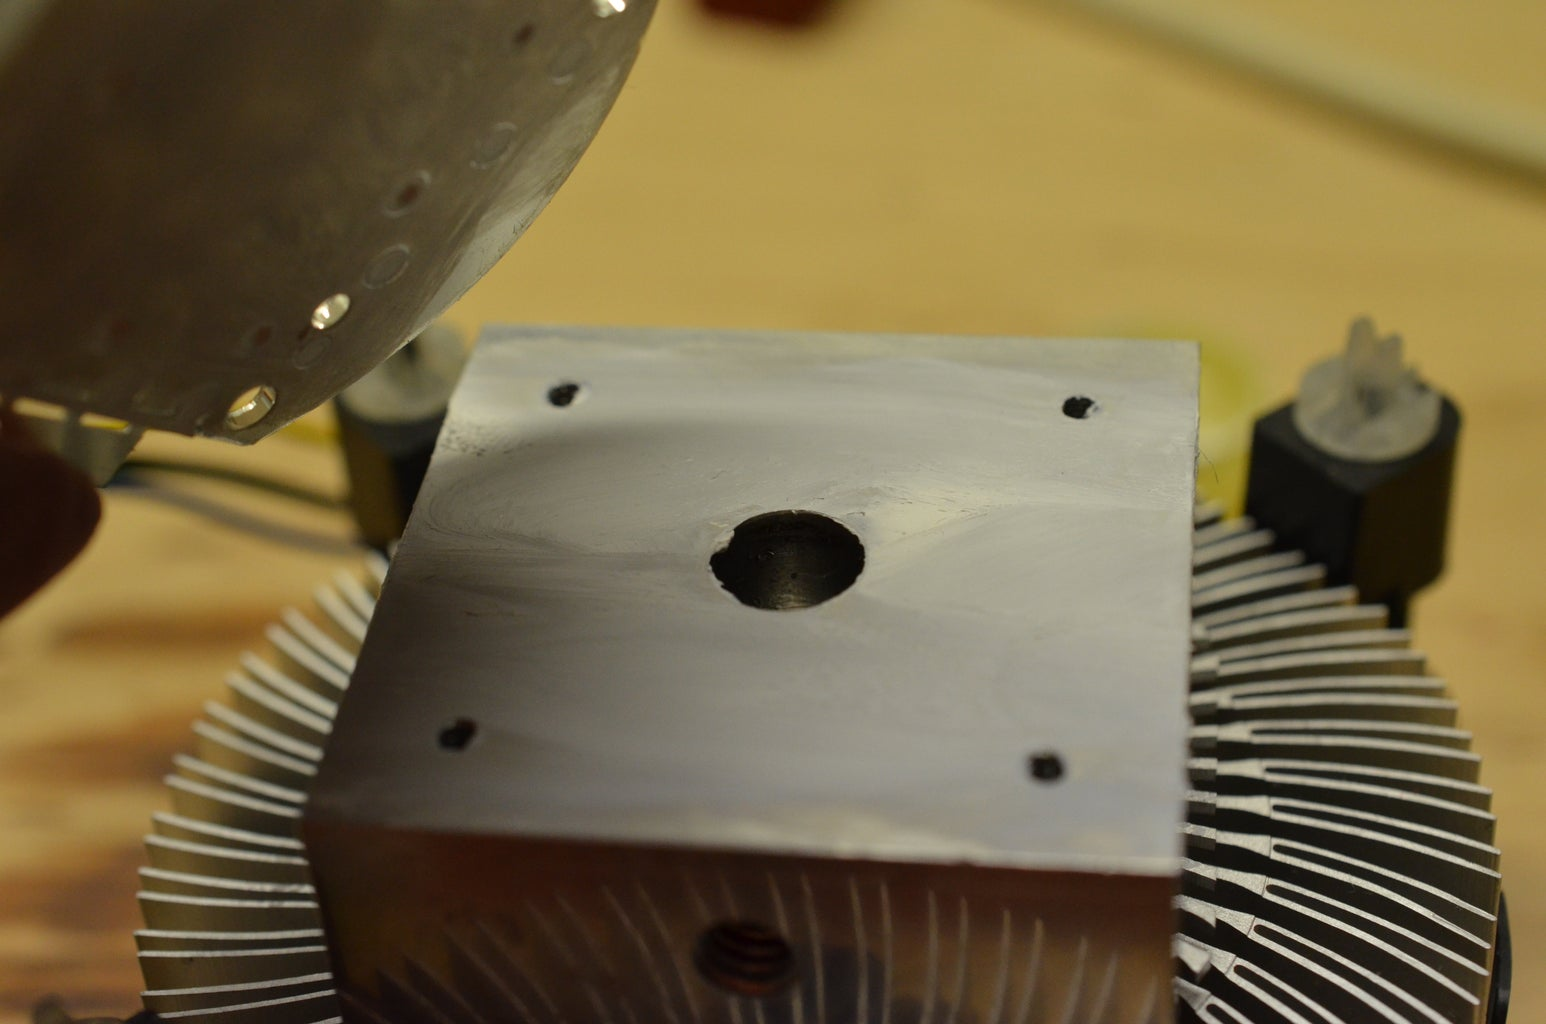 Attach the Mounting Plate, Heatsink, and LED Plate Together